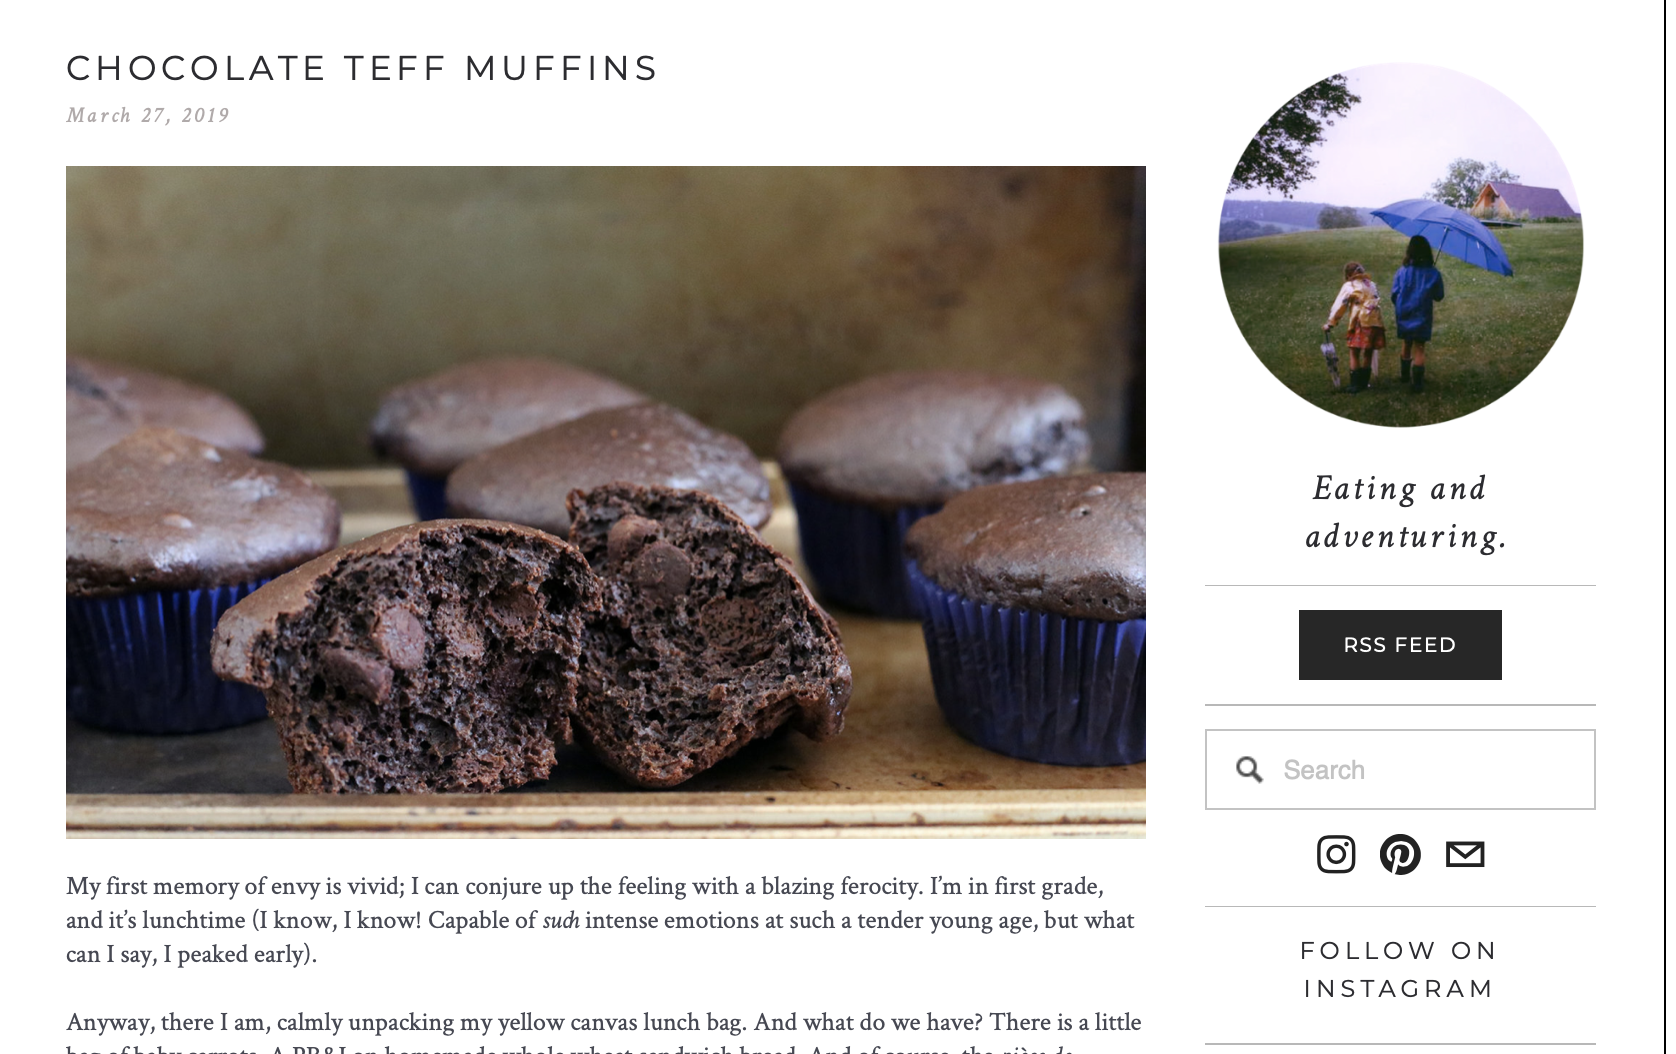 Chocolate_Teff-Muffins_Blog.png